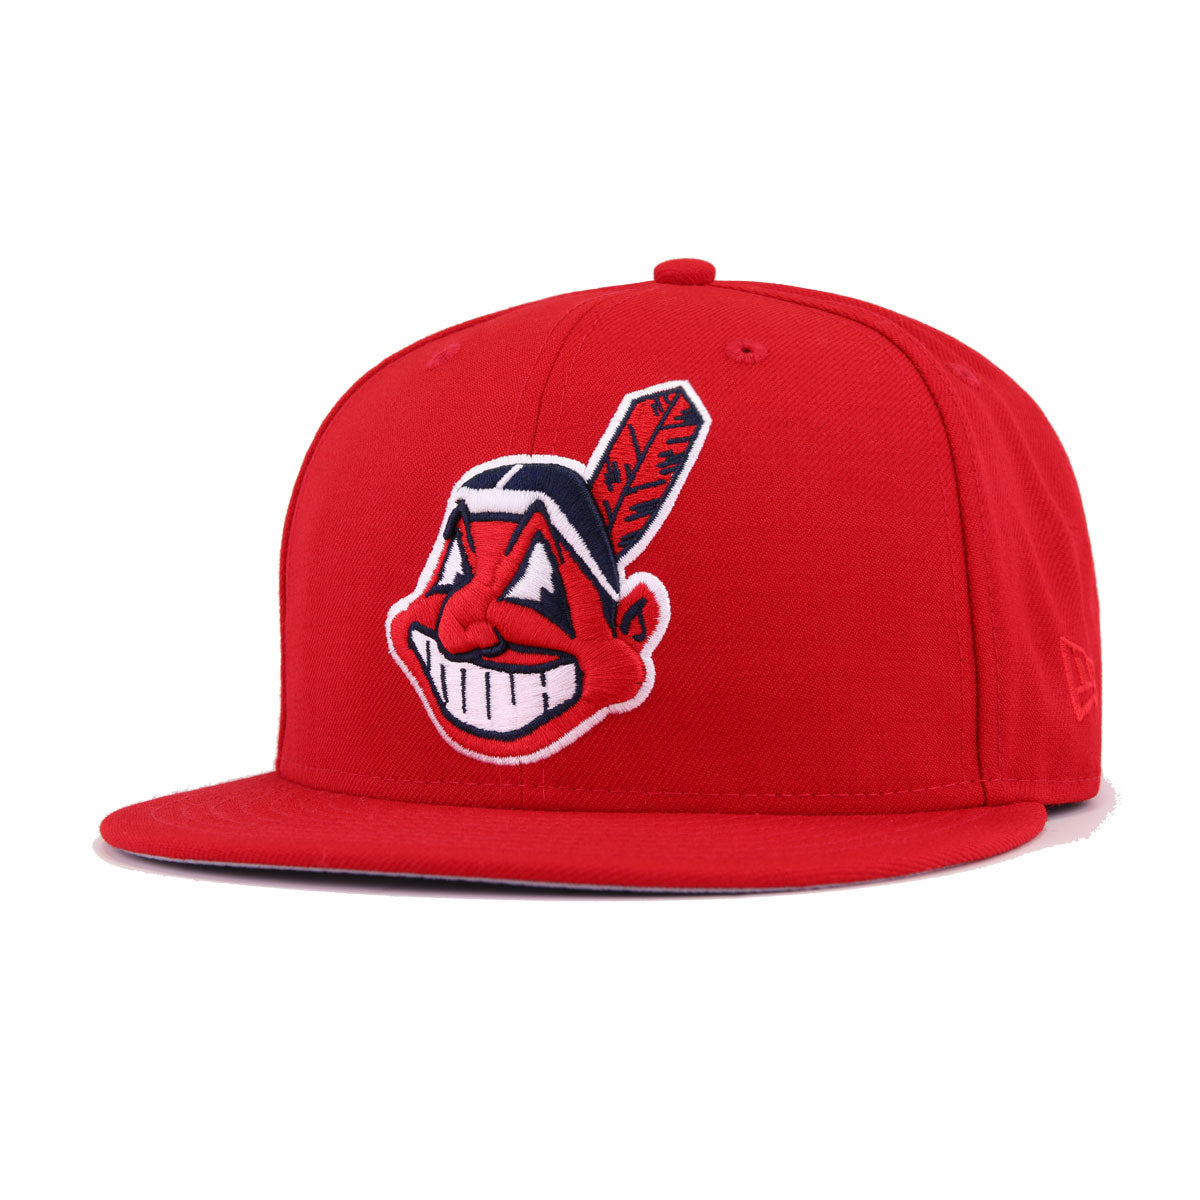 ae9cacb816442 Cleveland Indians Scarlet Chief Wahoo New Era 59Fifty Fitted